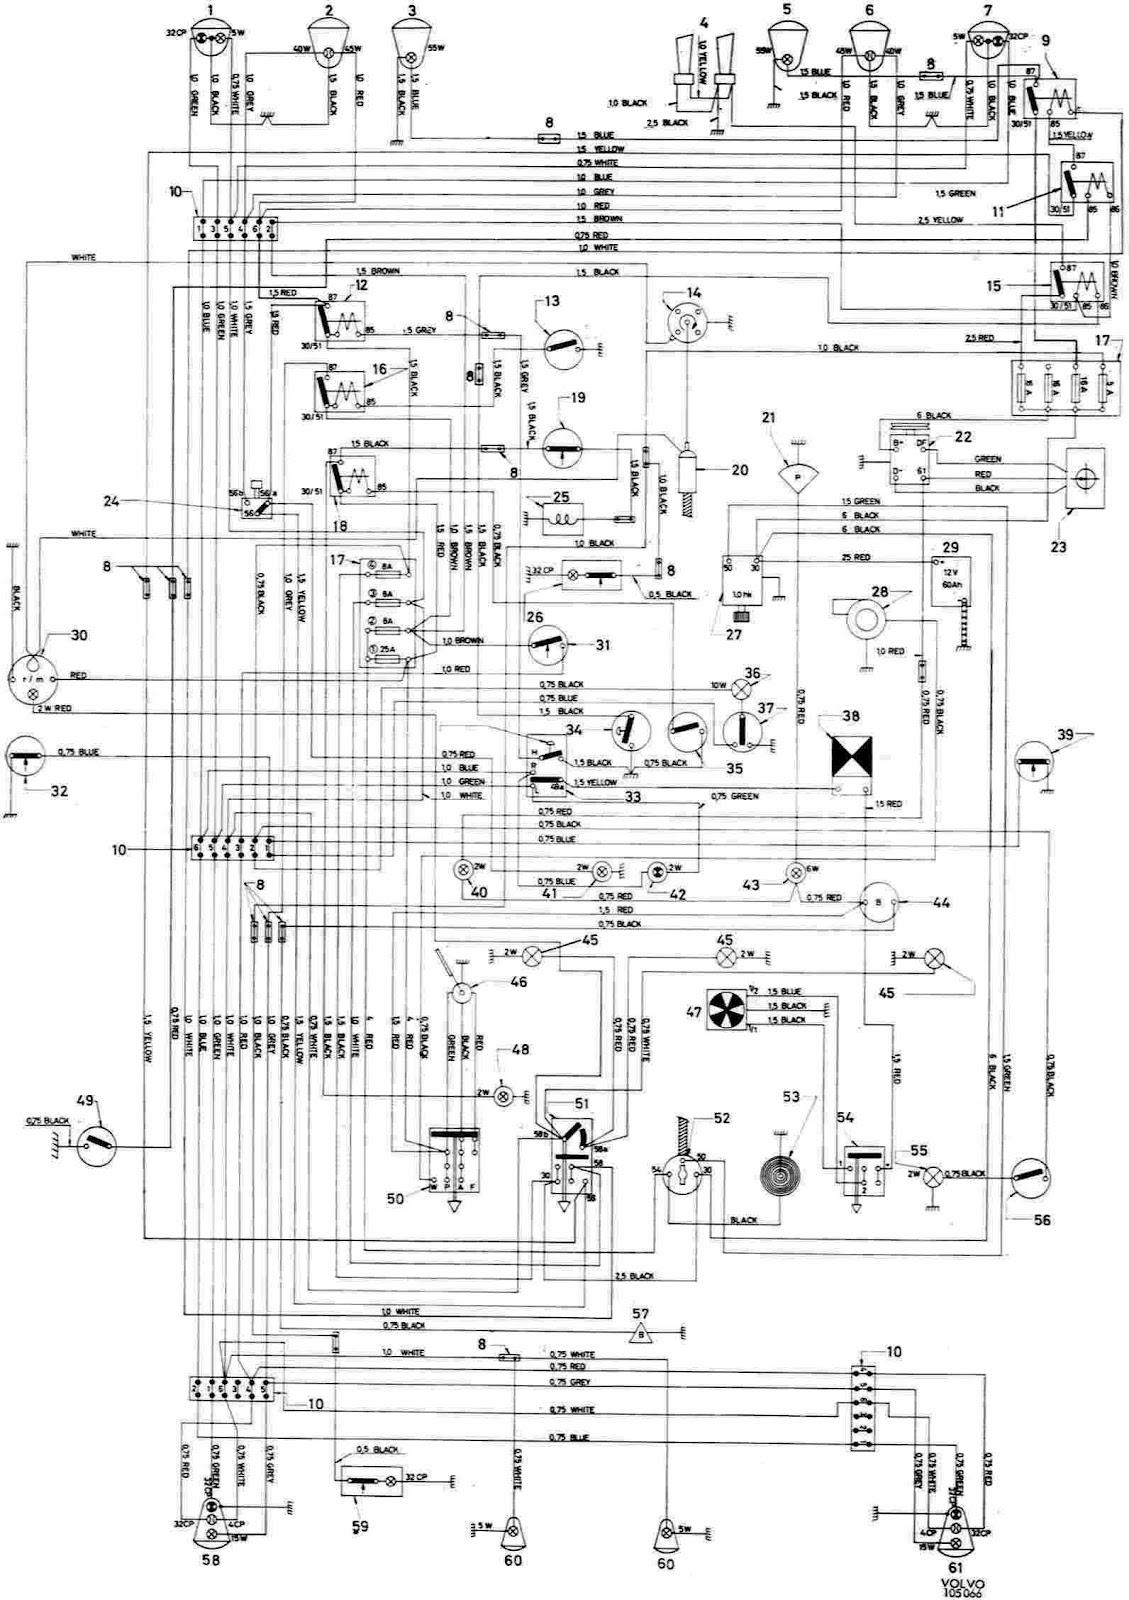 Volvo+123+GT+Complete+Wiring+Diagram hu 613 wiring diagram boat wiring diagram \u2022 wiring diagrams j volvo wiring harness at bayanpartner.co